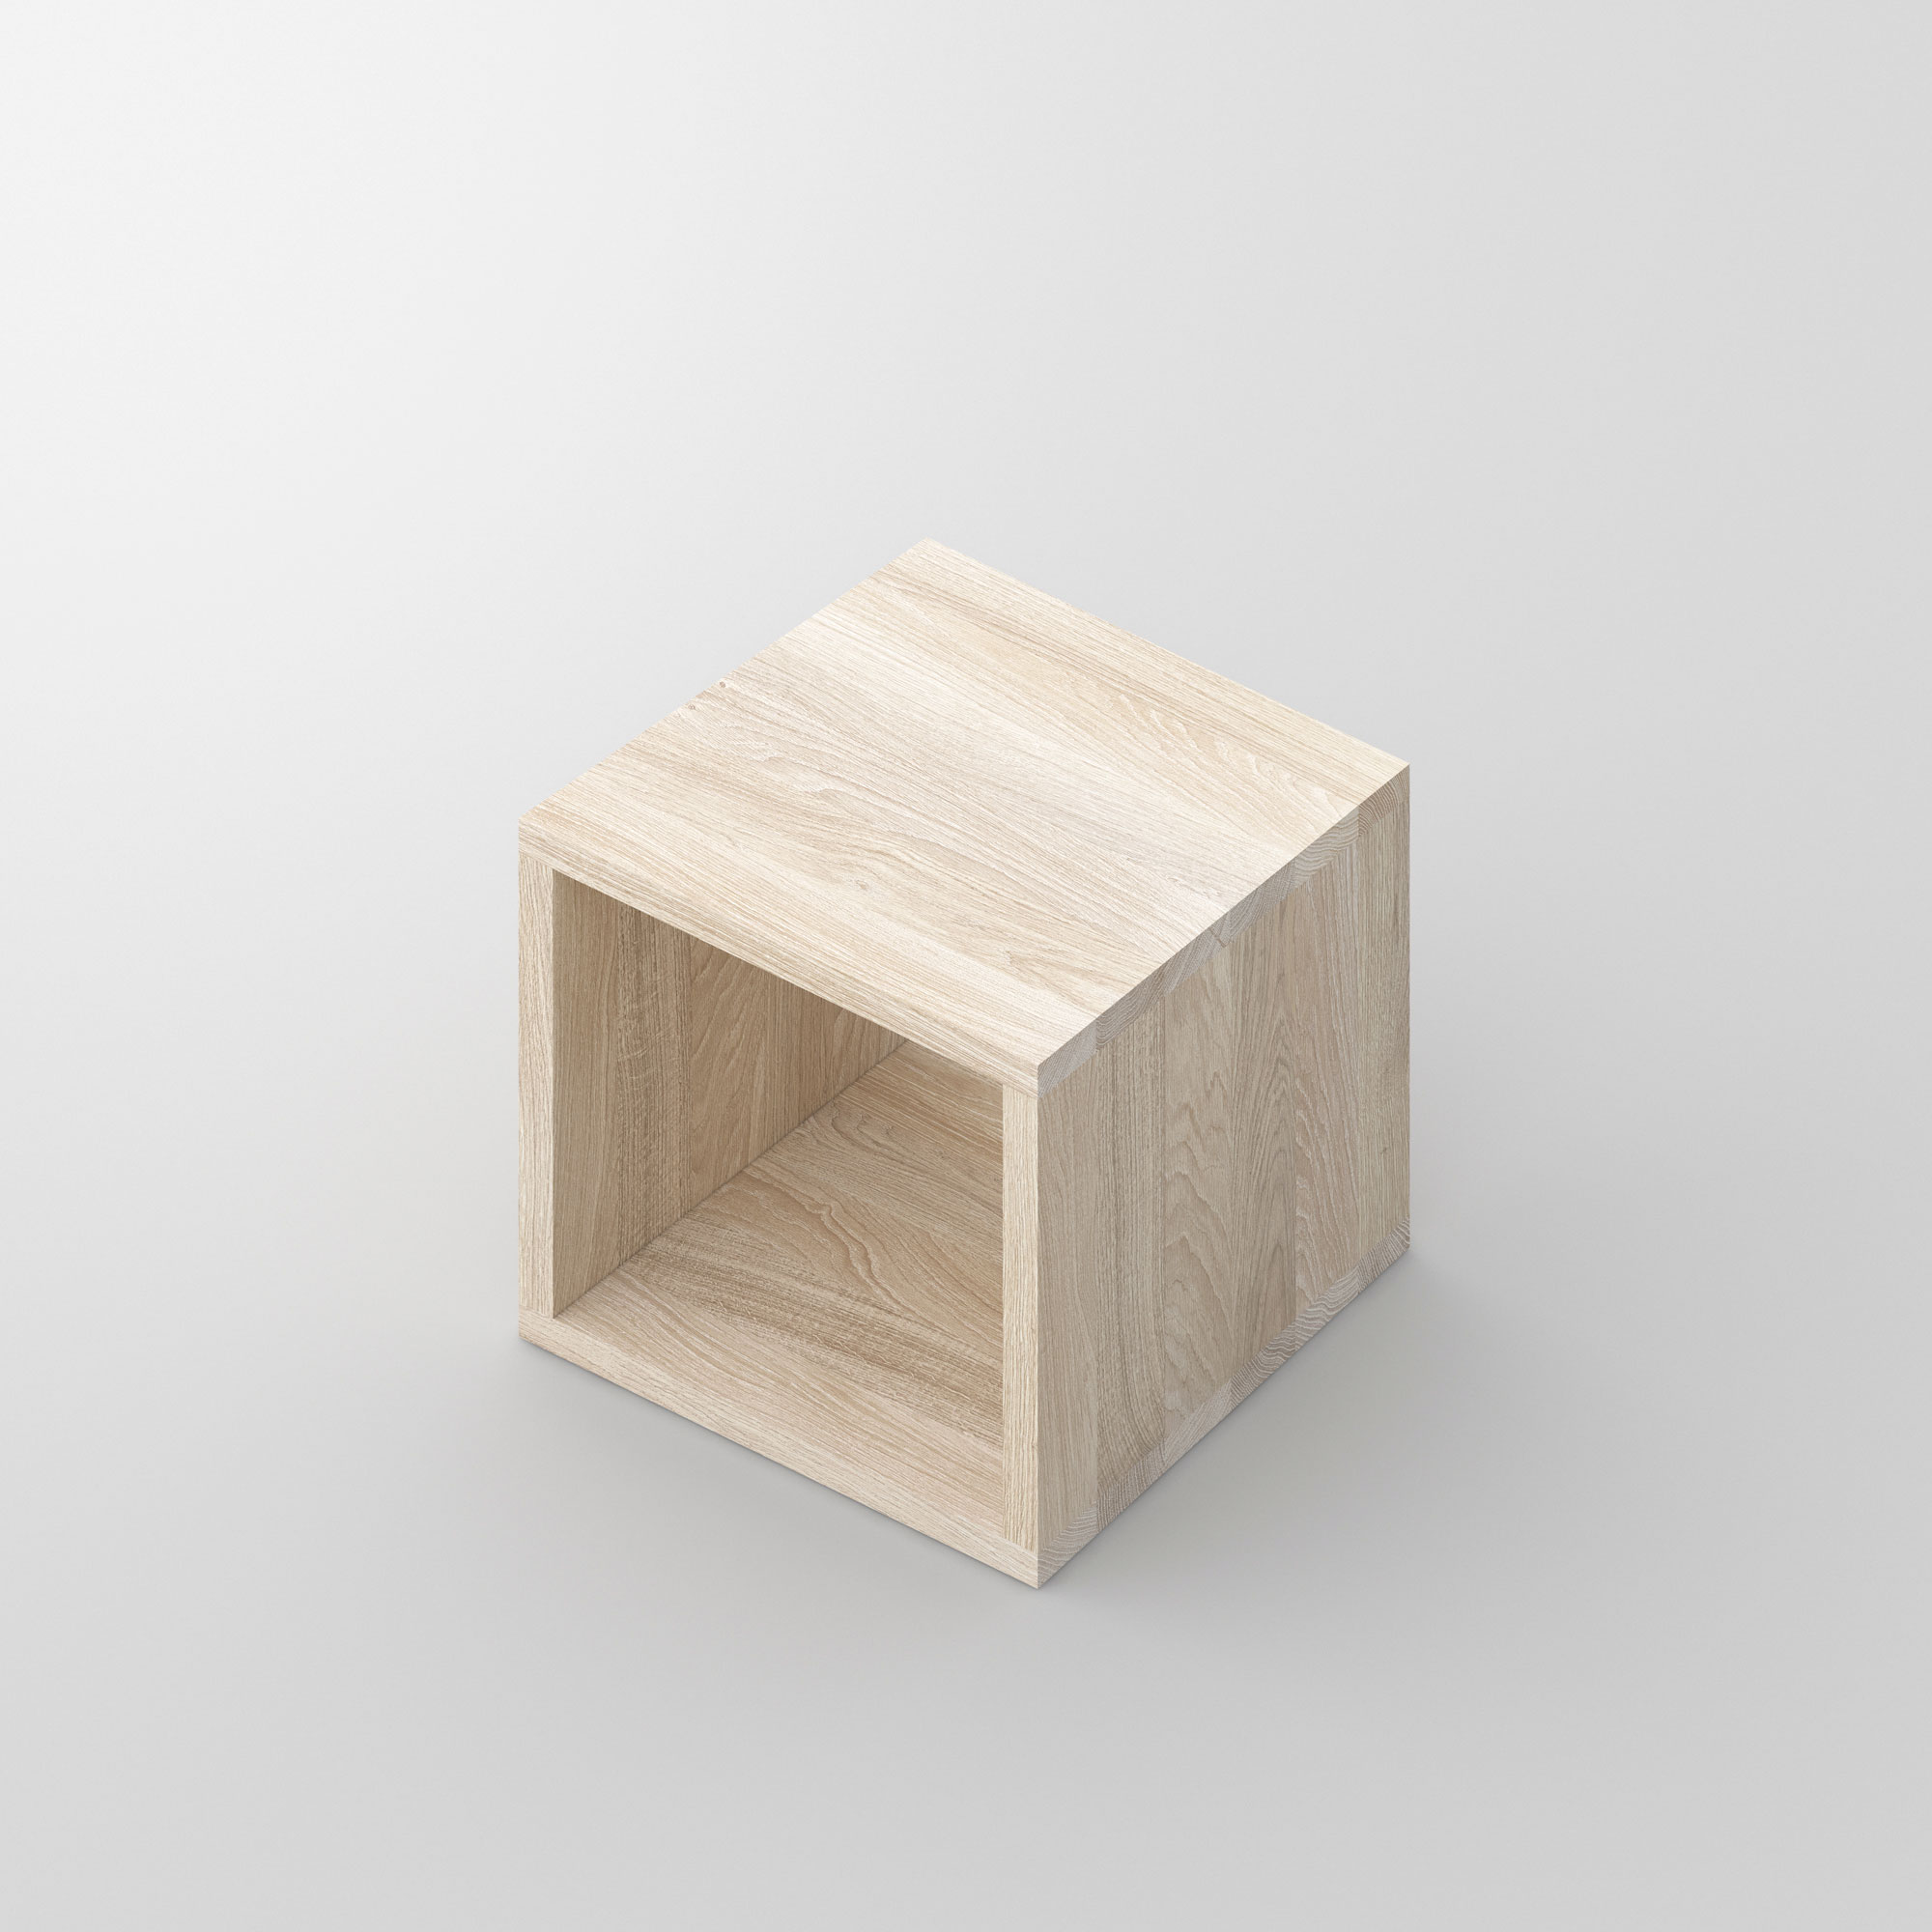 Multifunctional Wooden Coffee Table MENA B 3 cam3 custom made in solid wood by vitamin design